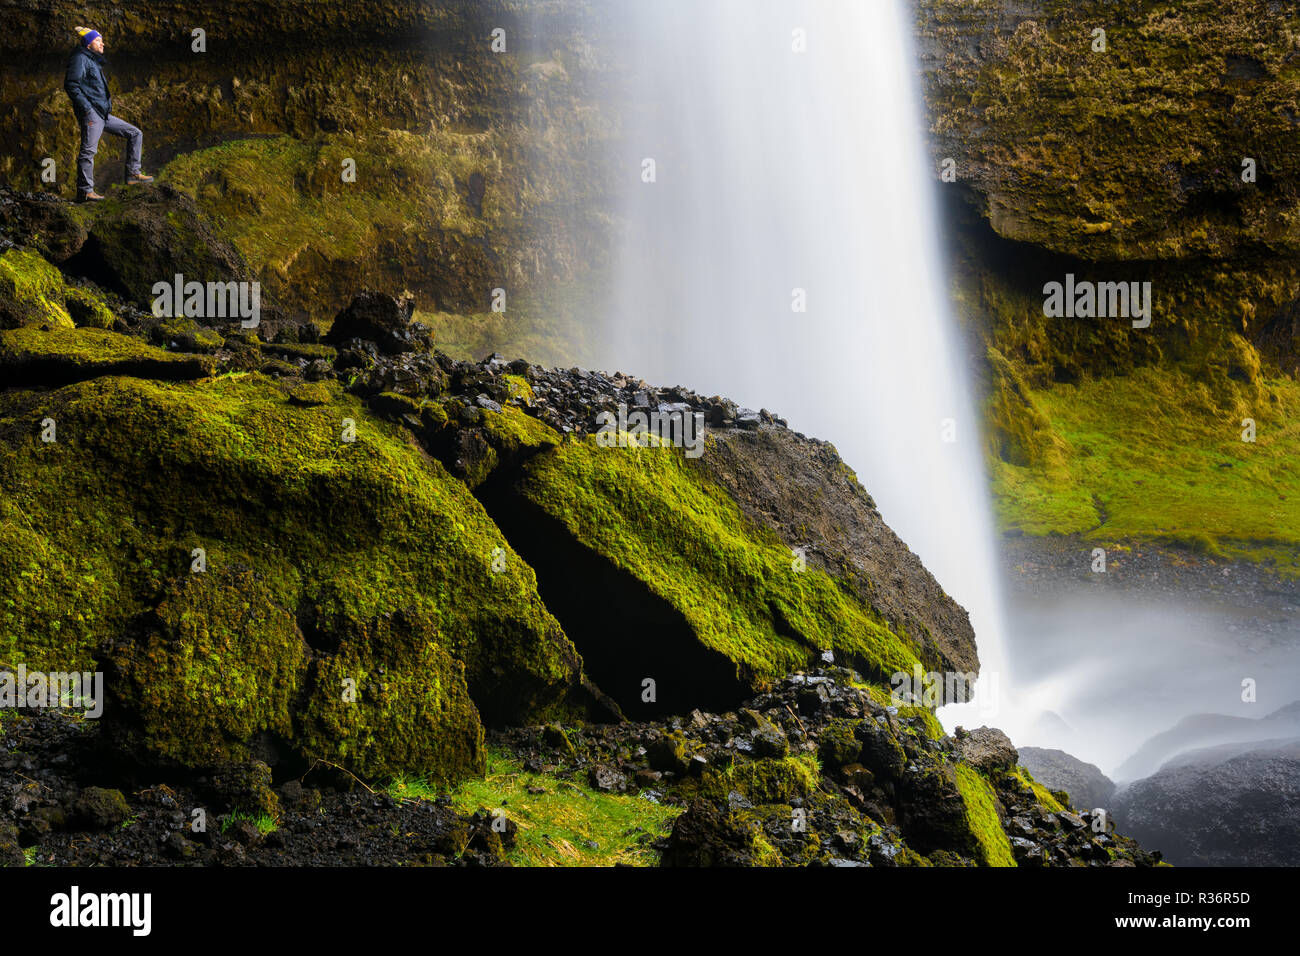 Person standing behind the fascinating Kvernufoss waterfall in Iceland. - Stock Image